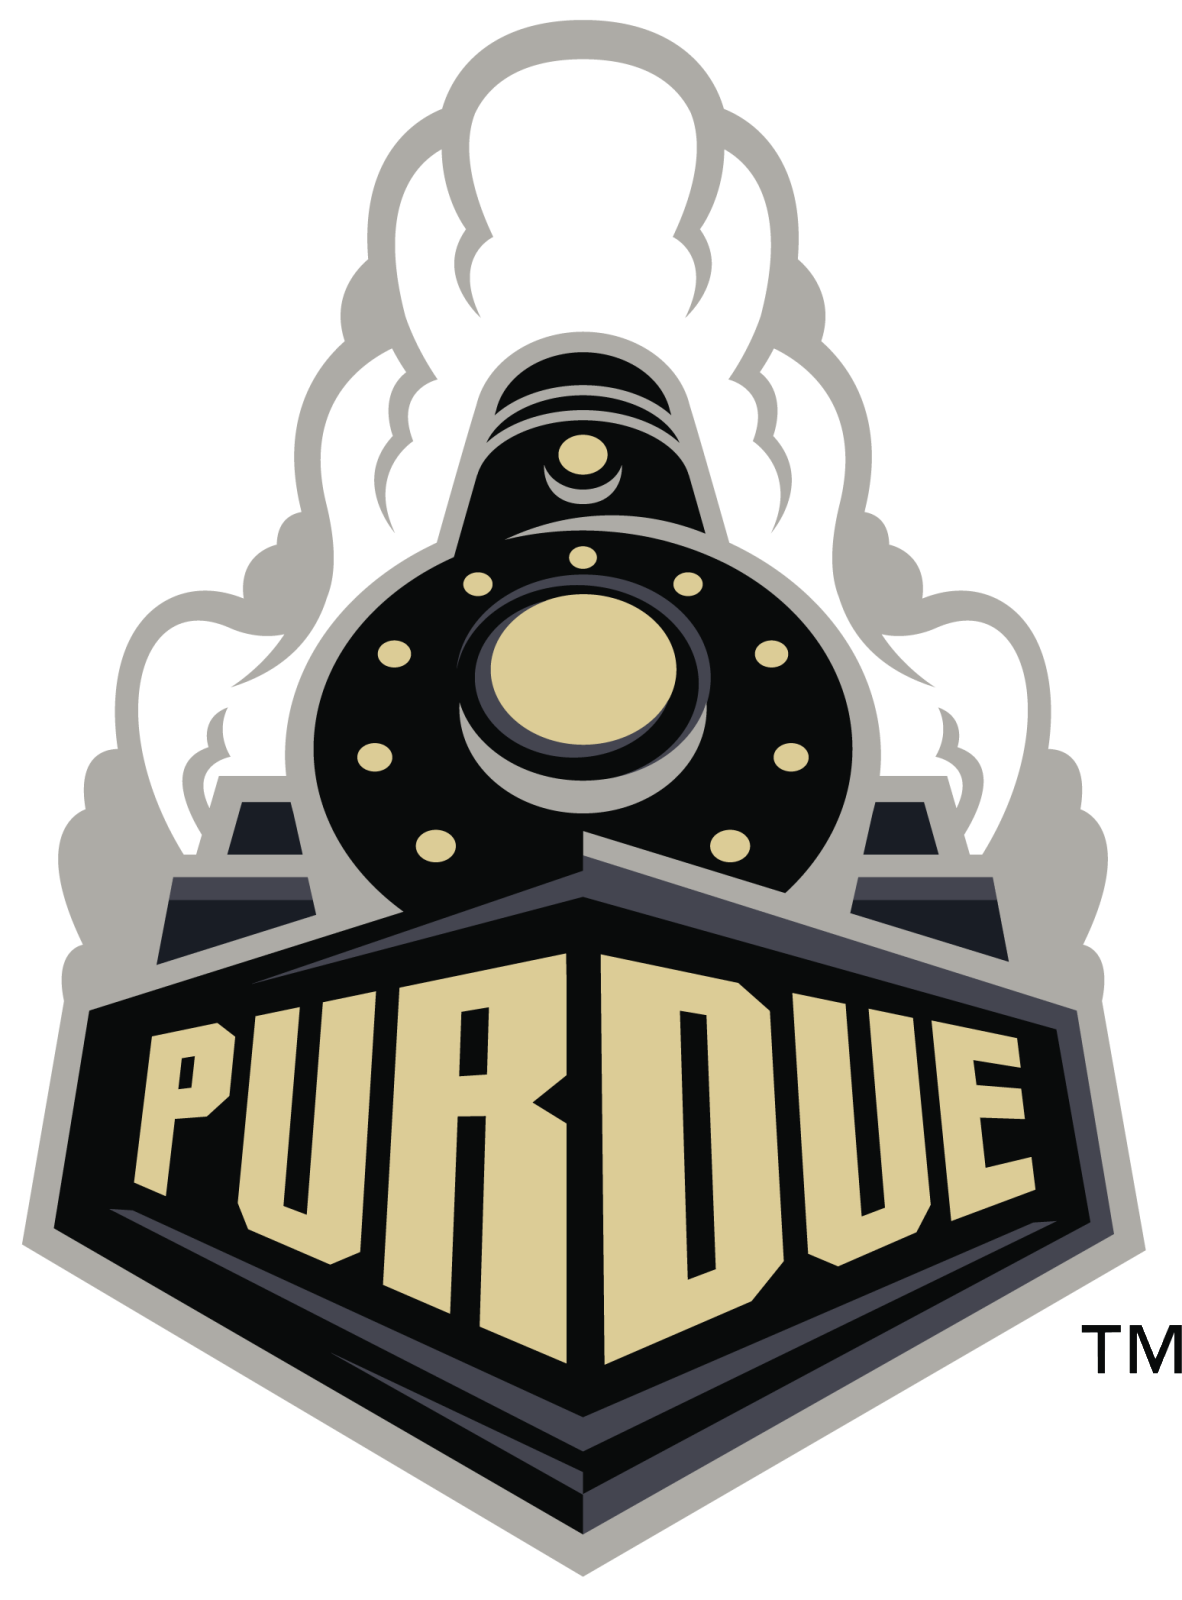 Color printing at purdue - 25 Best Ideas About Purdue Logo On Pinterest Chemistry Help Chemistry Table And Vsepr Theory